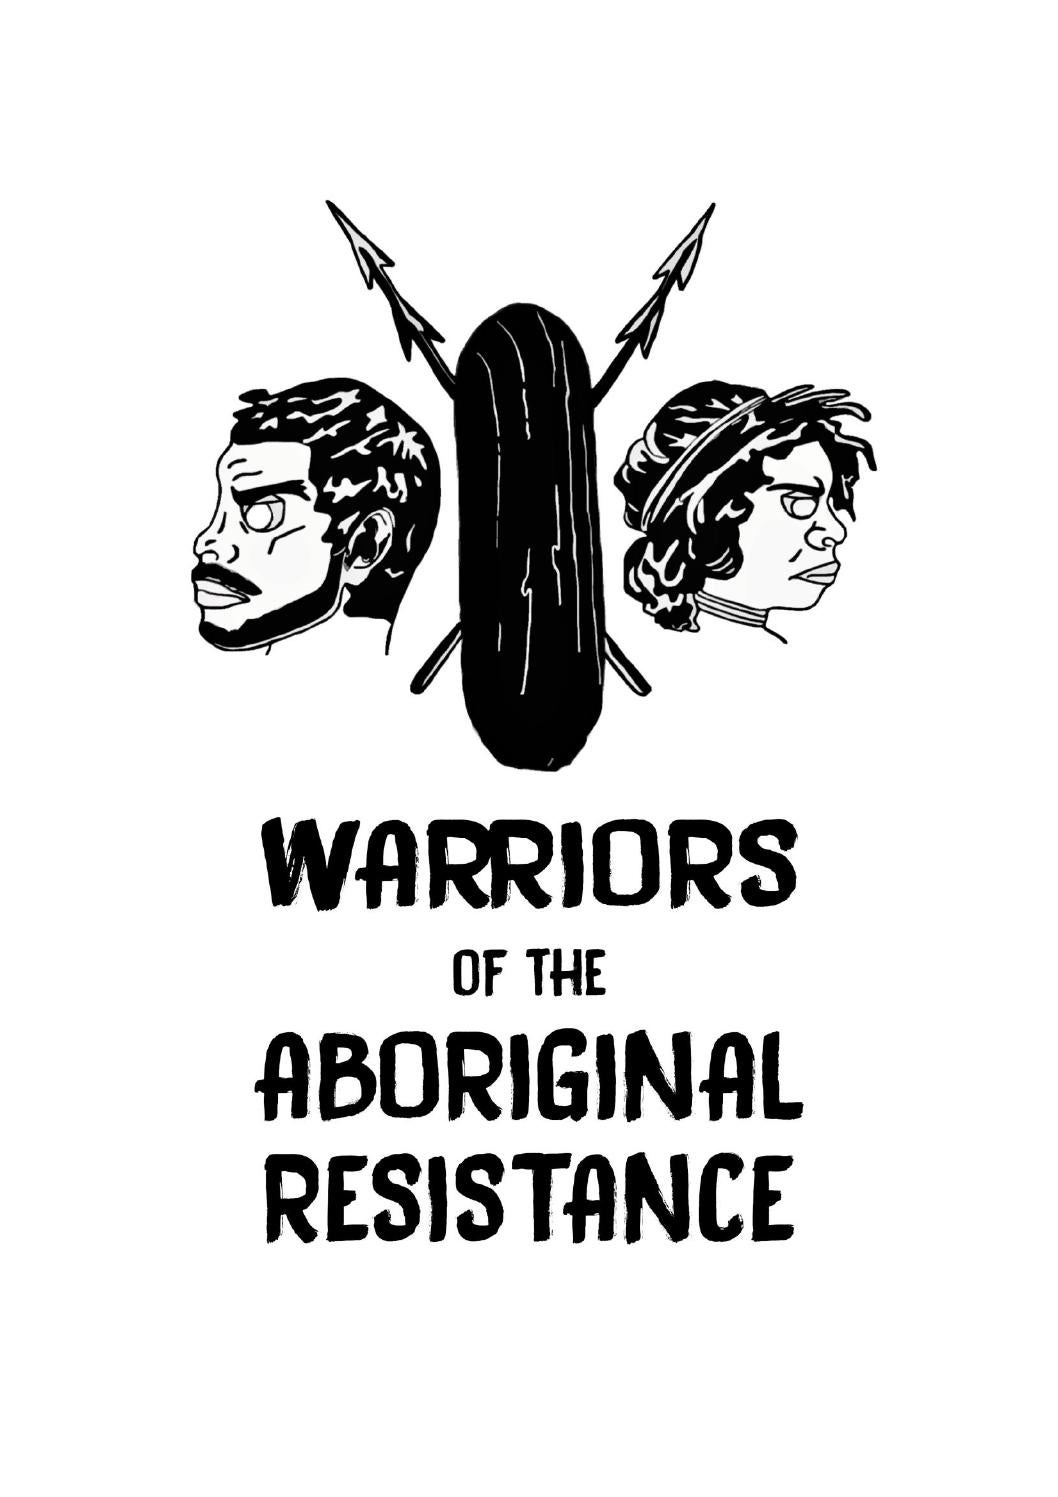 Warriors of the Aboriginal Resistance MANIFESTO by